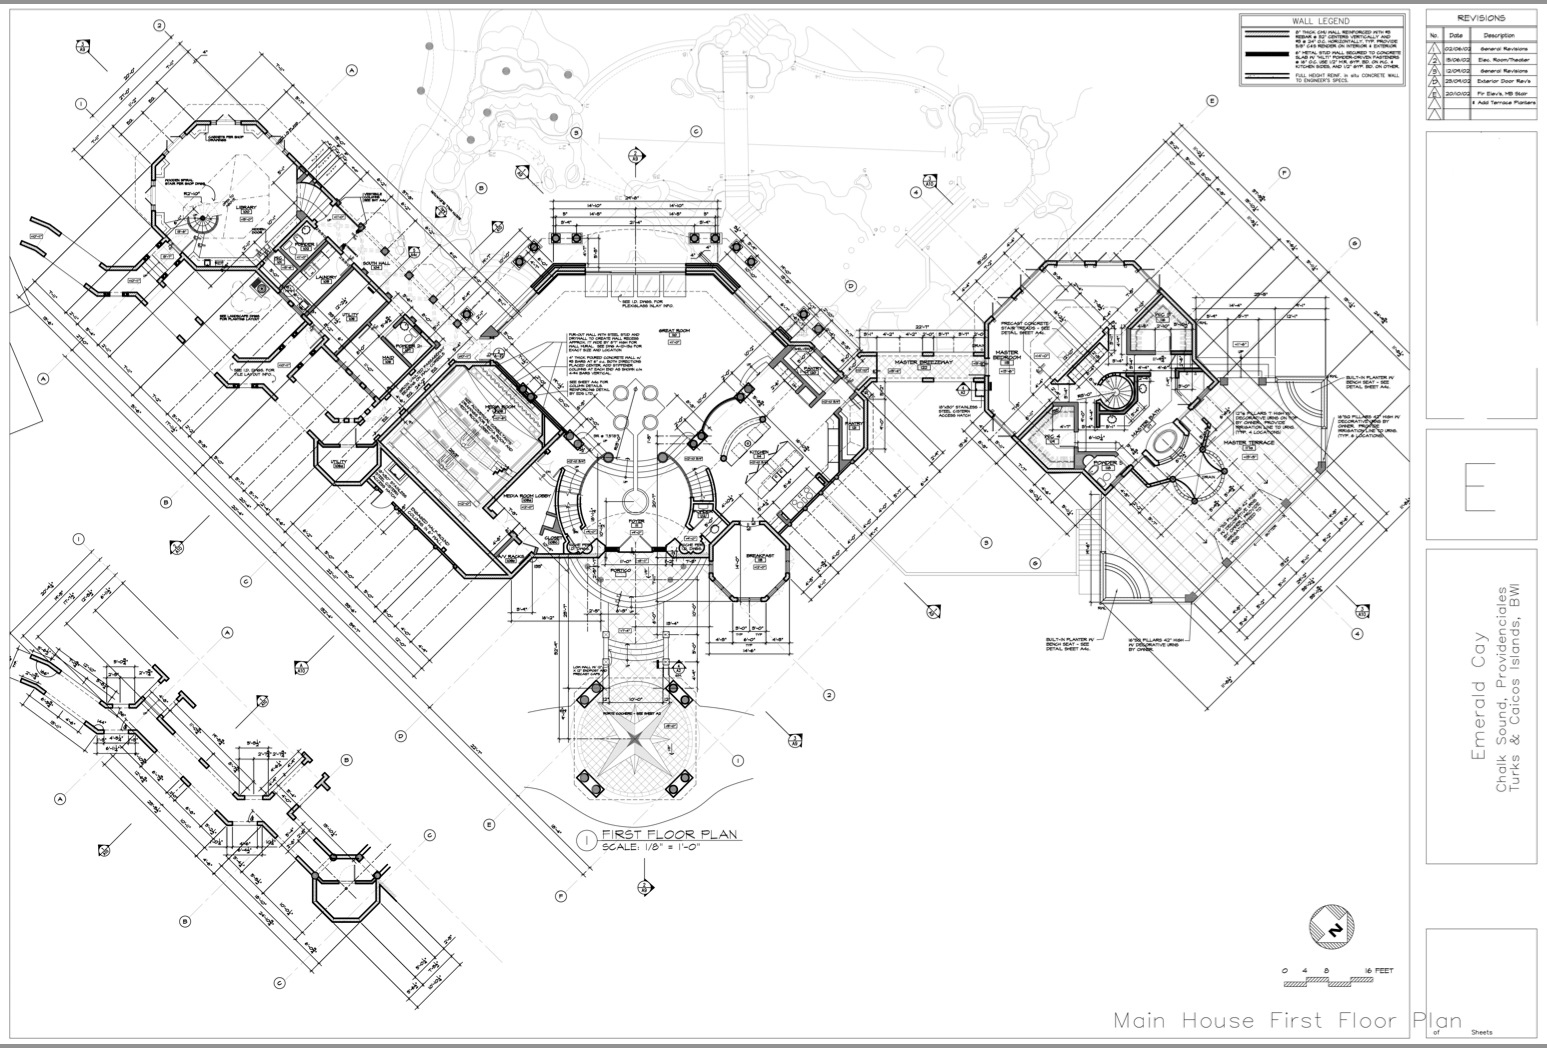 Main House Floor Plans - Emerald Cay Estate - Providenciales, Turks and Caicos Islands